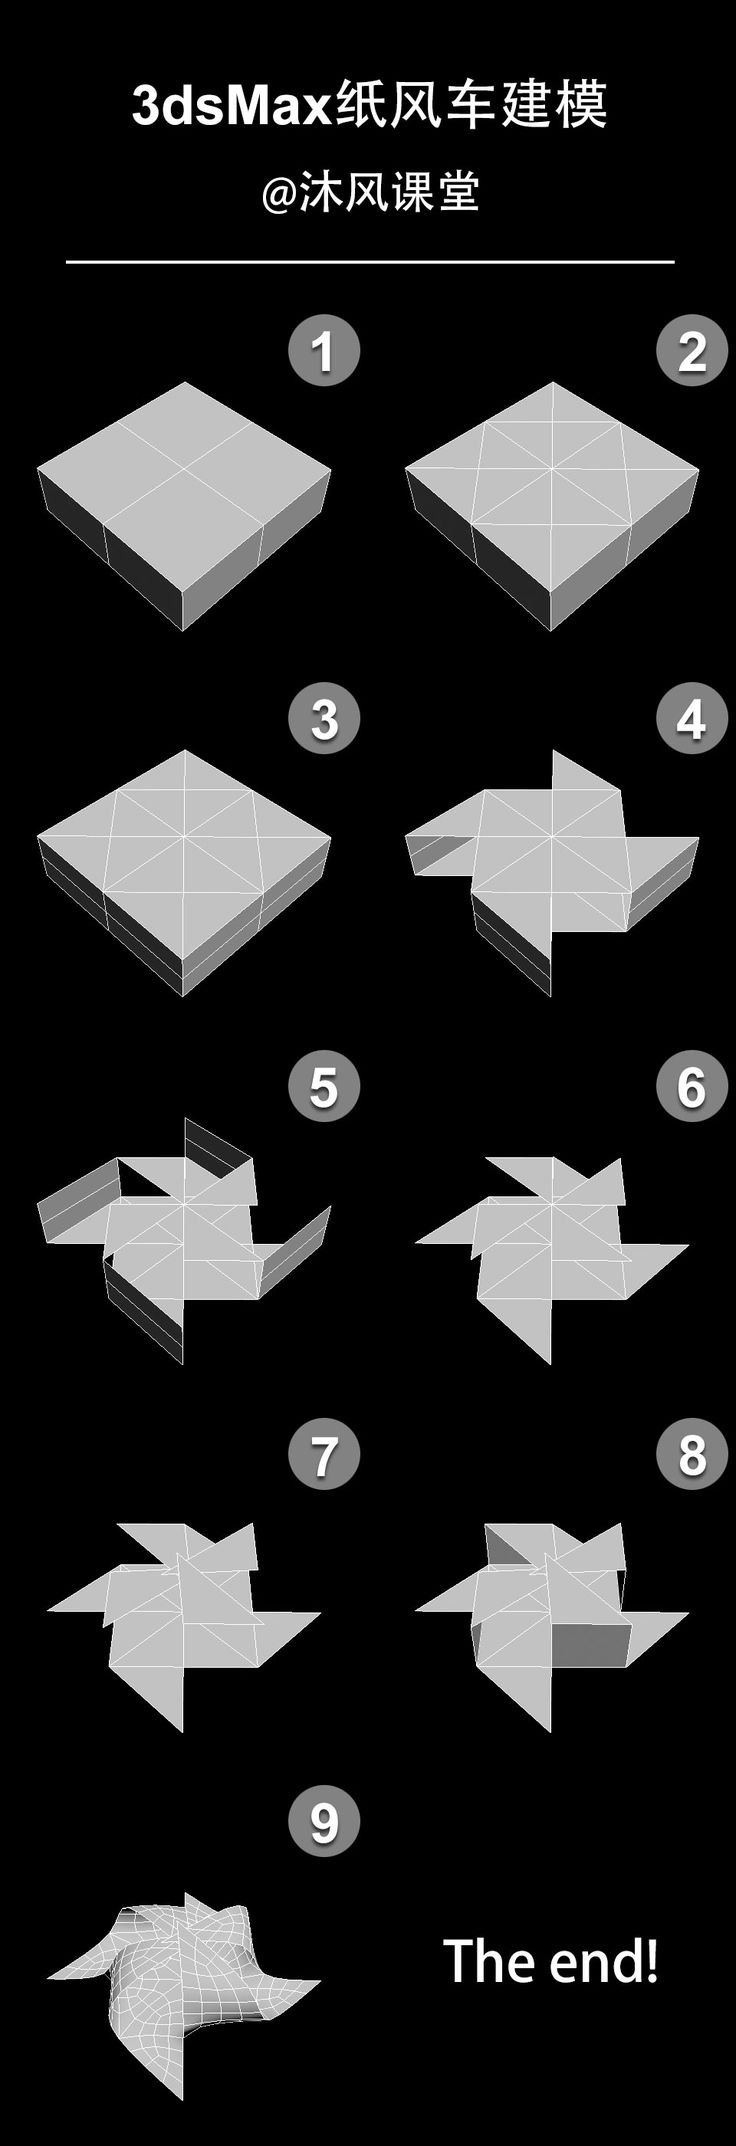 how to make windmill model